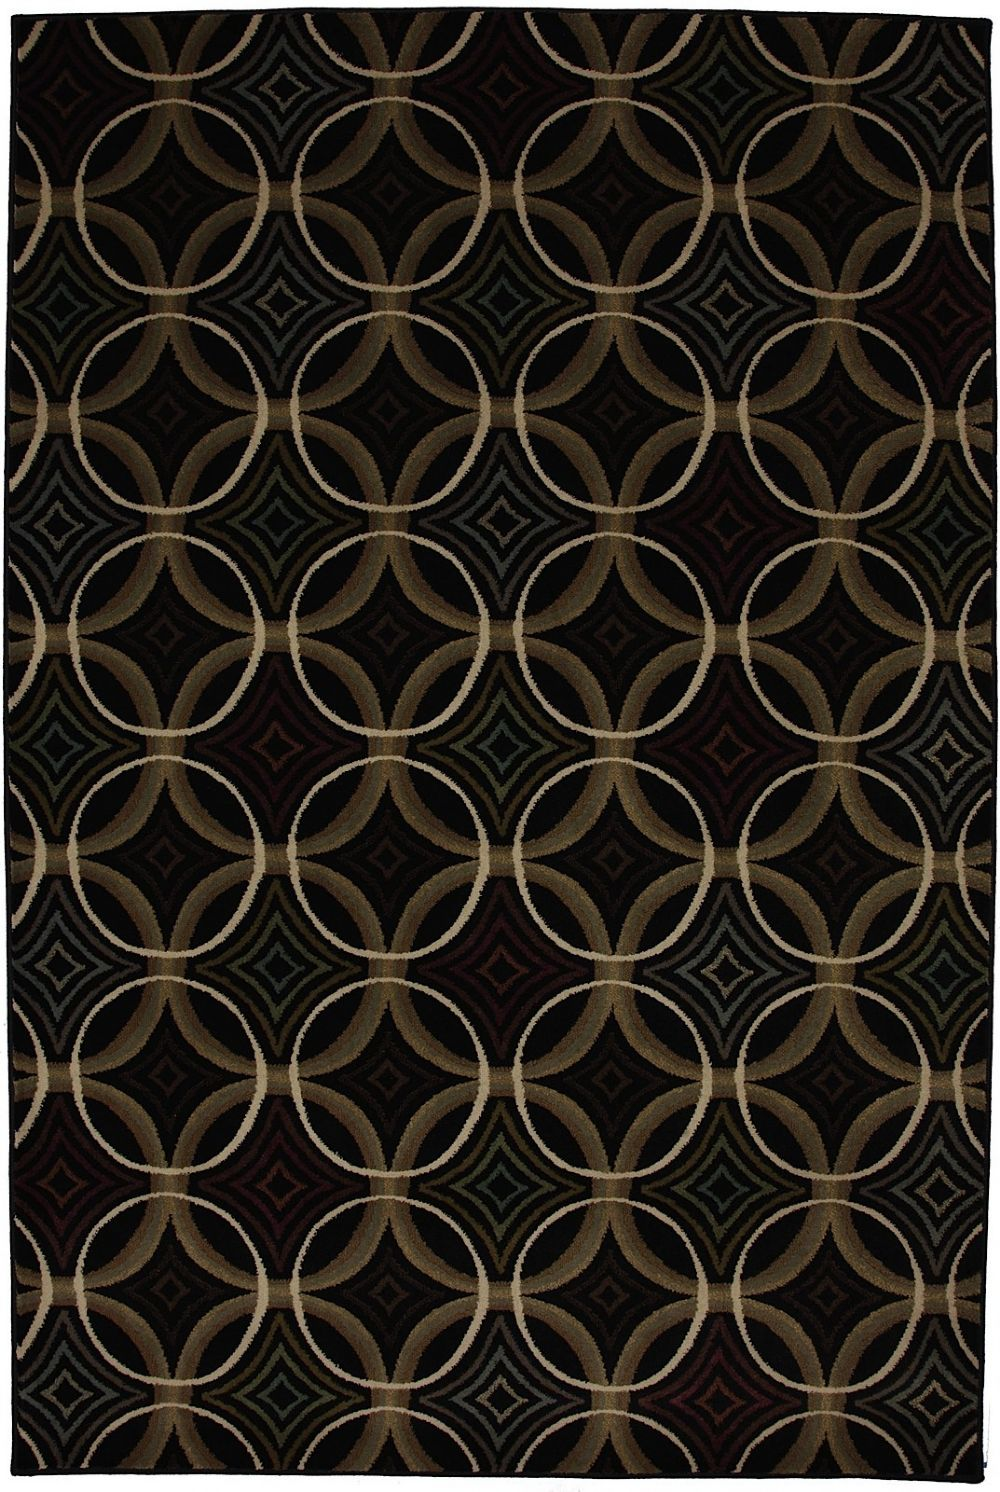 mohawk overlapping circles contemporary area rug collection